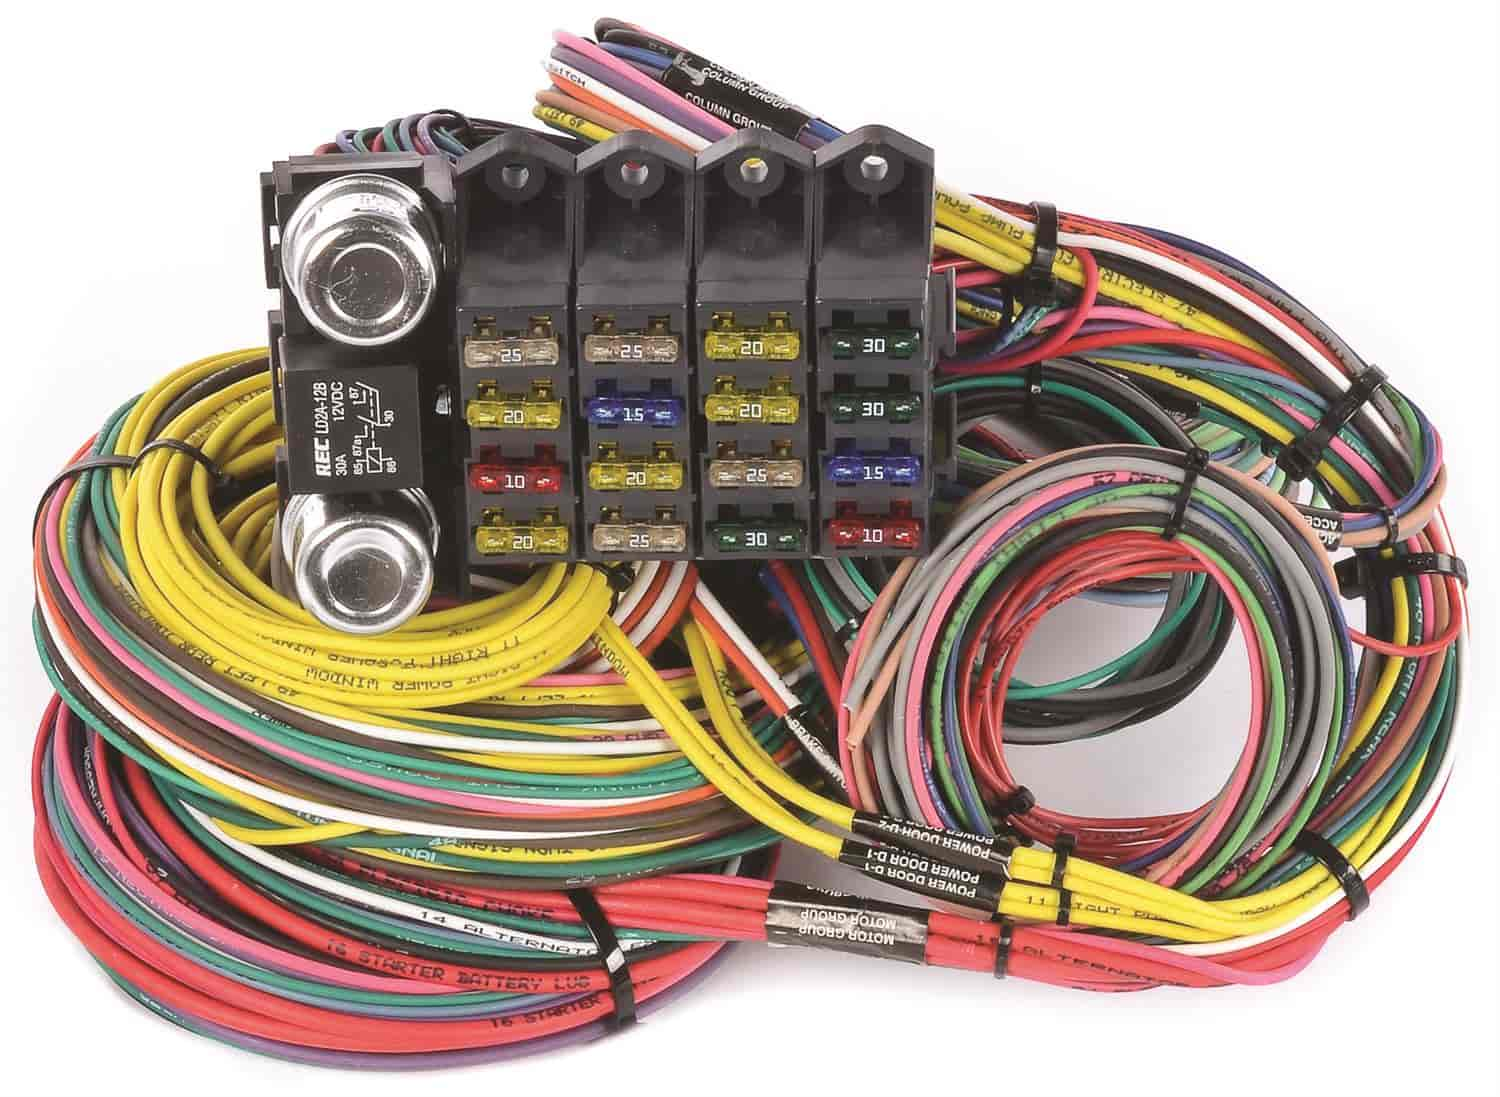 555 10405 jegs performance products 10405 universal wiring harness, 20 wiring harness motorcycle at gsmx.co